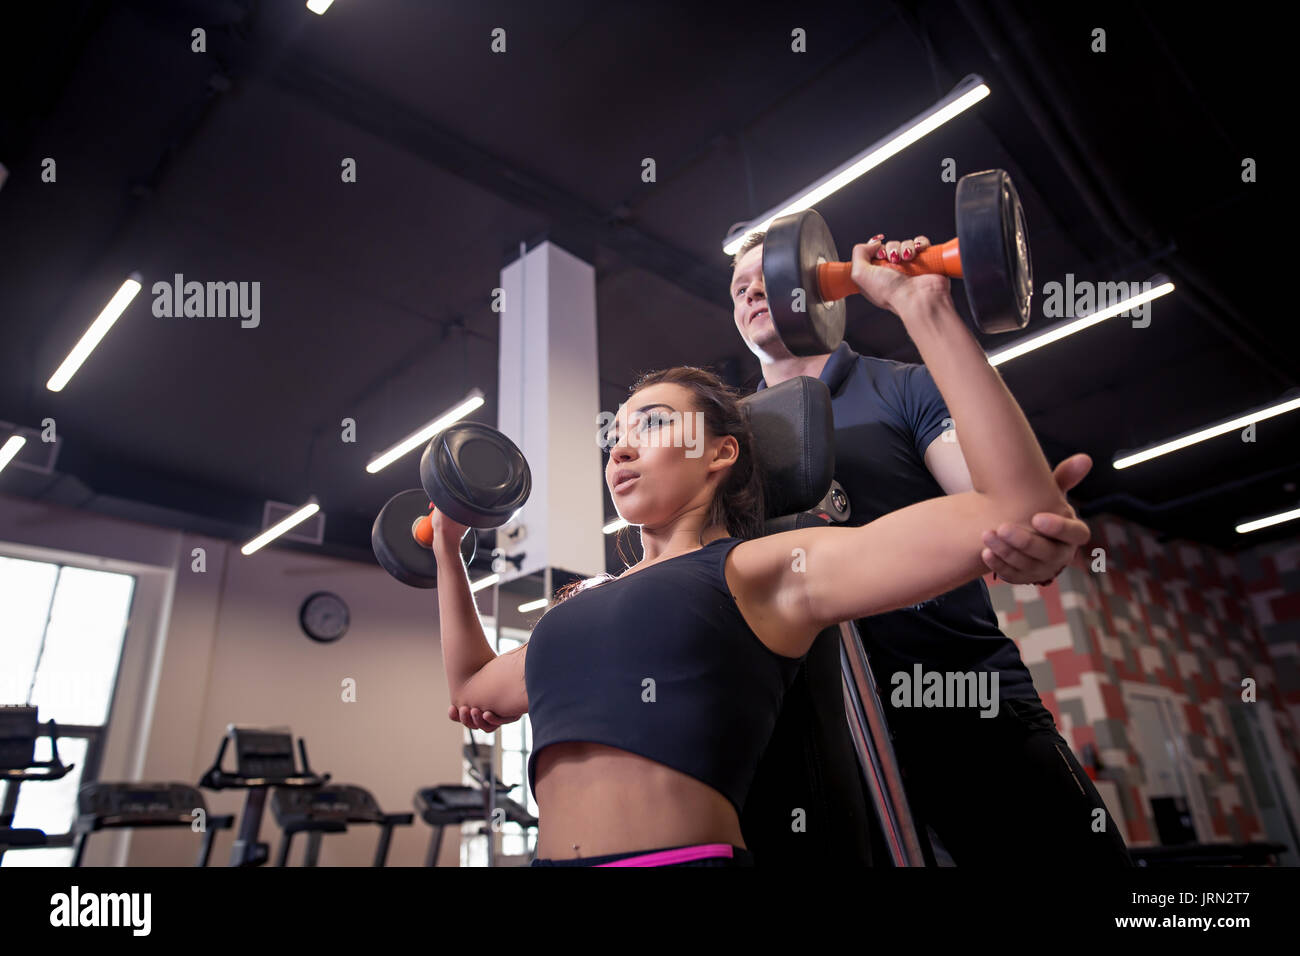 gym woman personal trainer man with weight training equipment - Stock Image